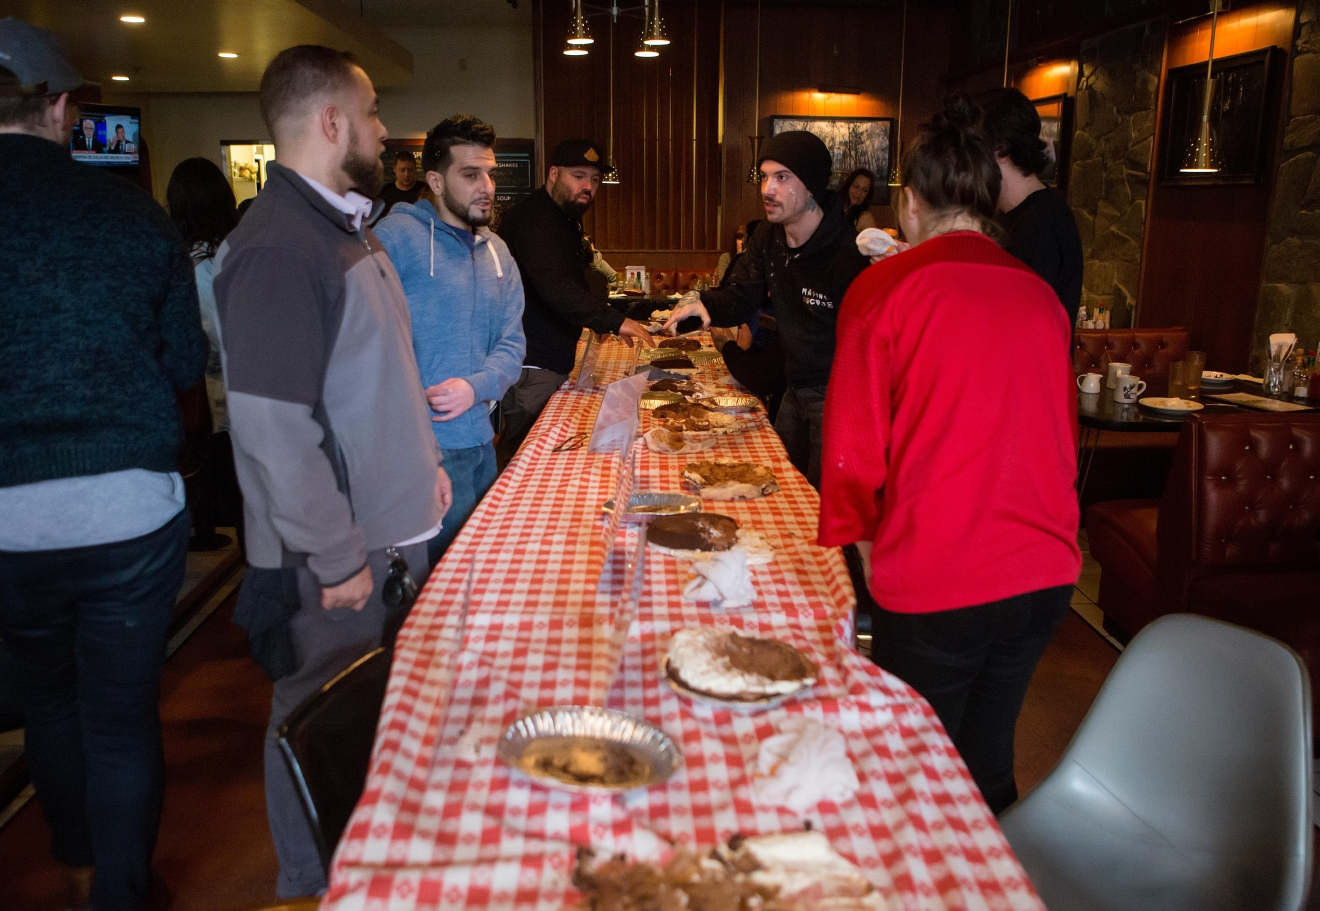 Pie lays scattered around the table after the second annual Pi Day Pie Eating Contest comes to a close at Lost Lake Cafe. (Sy Bean / Seattle Refined)